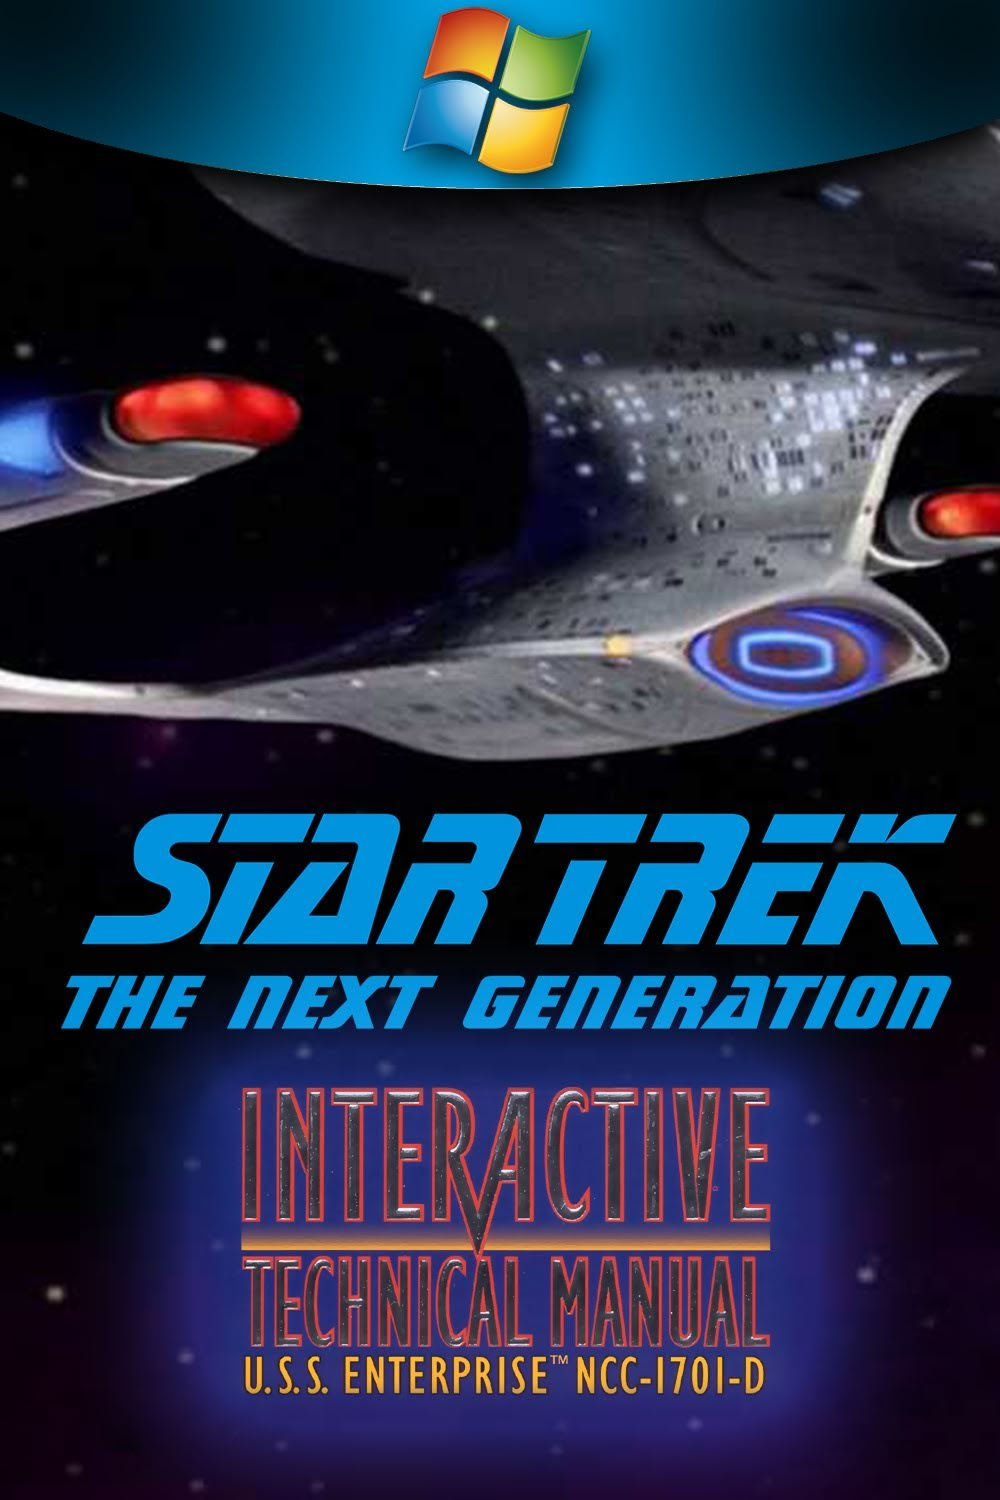 https://collectionchamber.blogspot.com/p/star-trek-next-generation-interactive.html